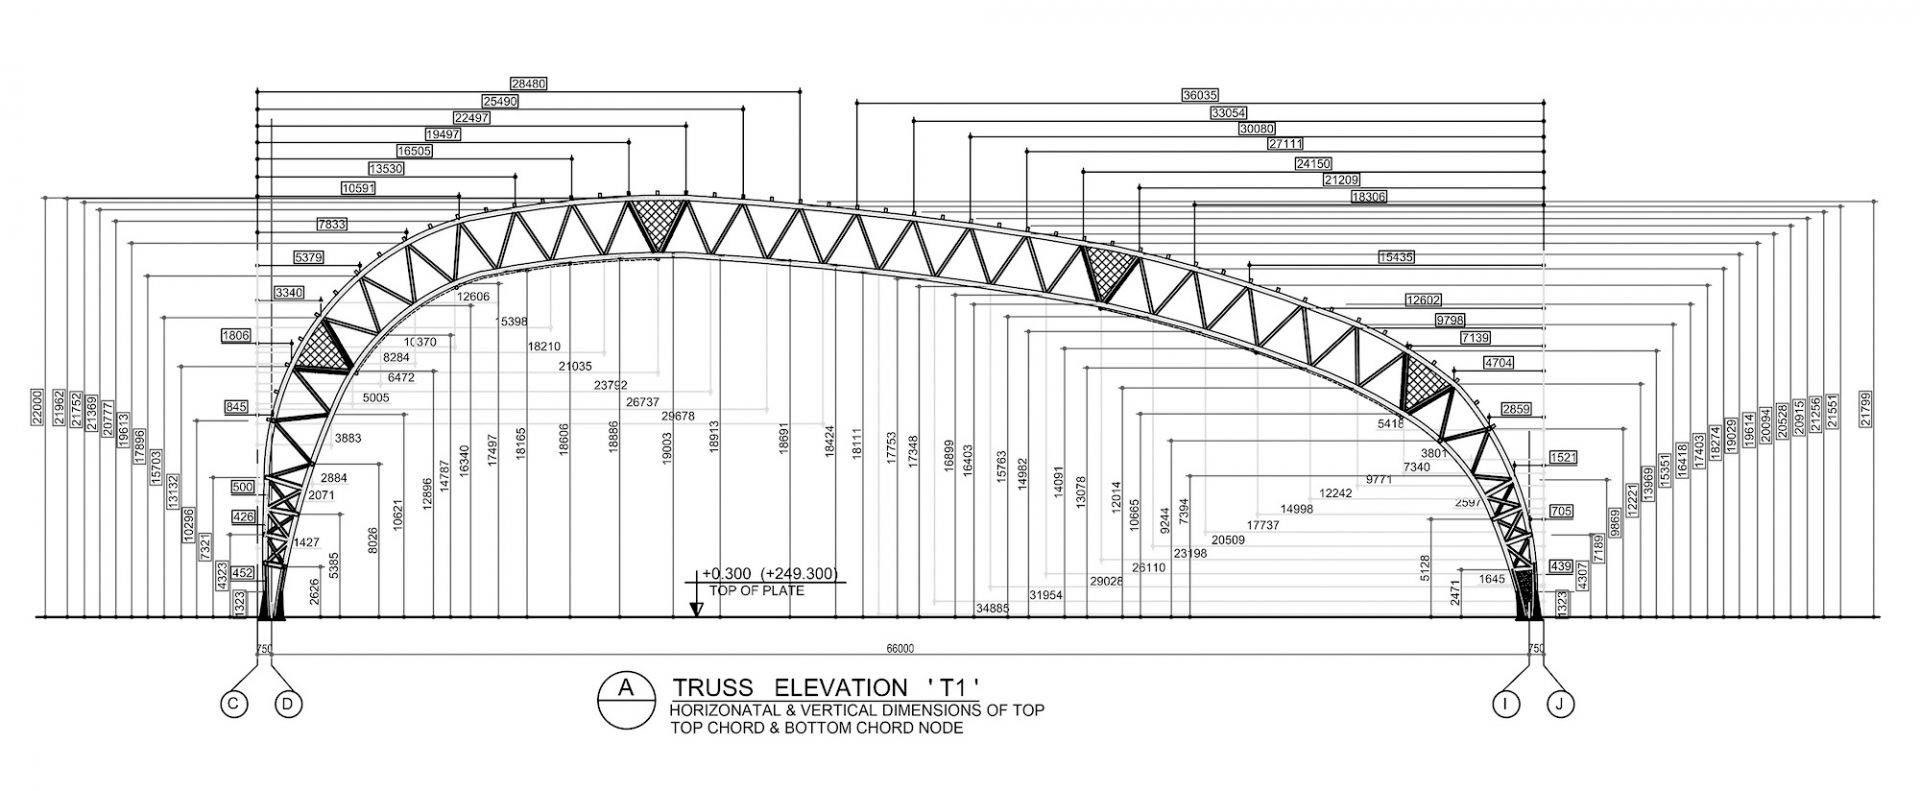 Jaisalmer Airport, 2013. Truss Elevation Architect: Studio VanRo Engineer: Mahendra Raj